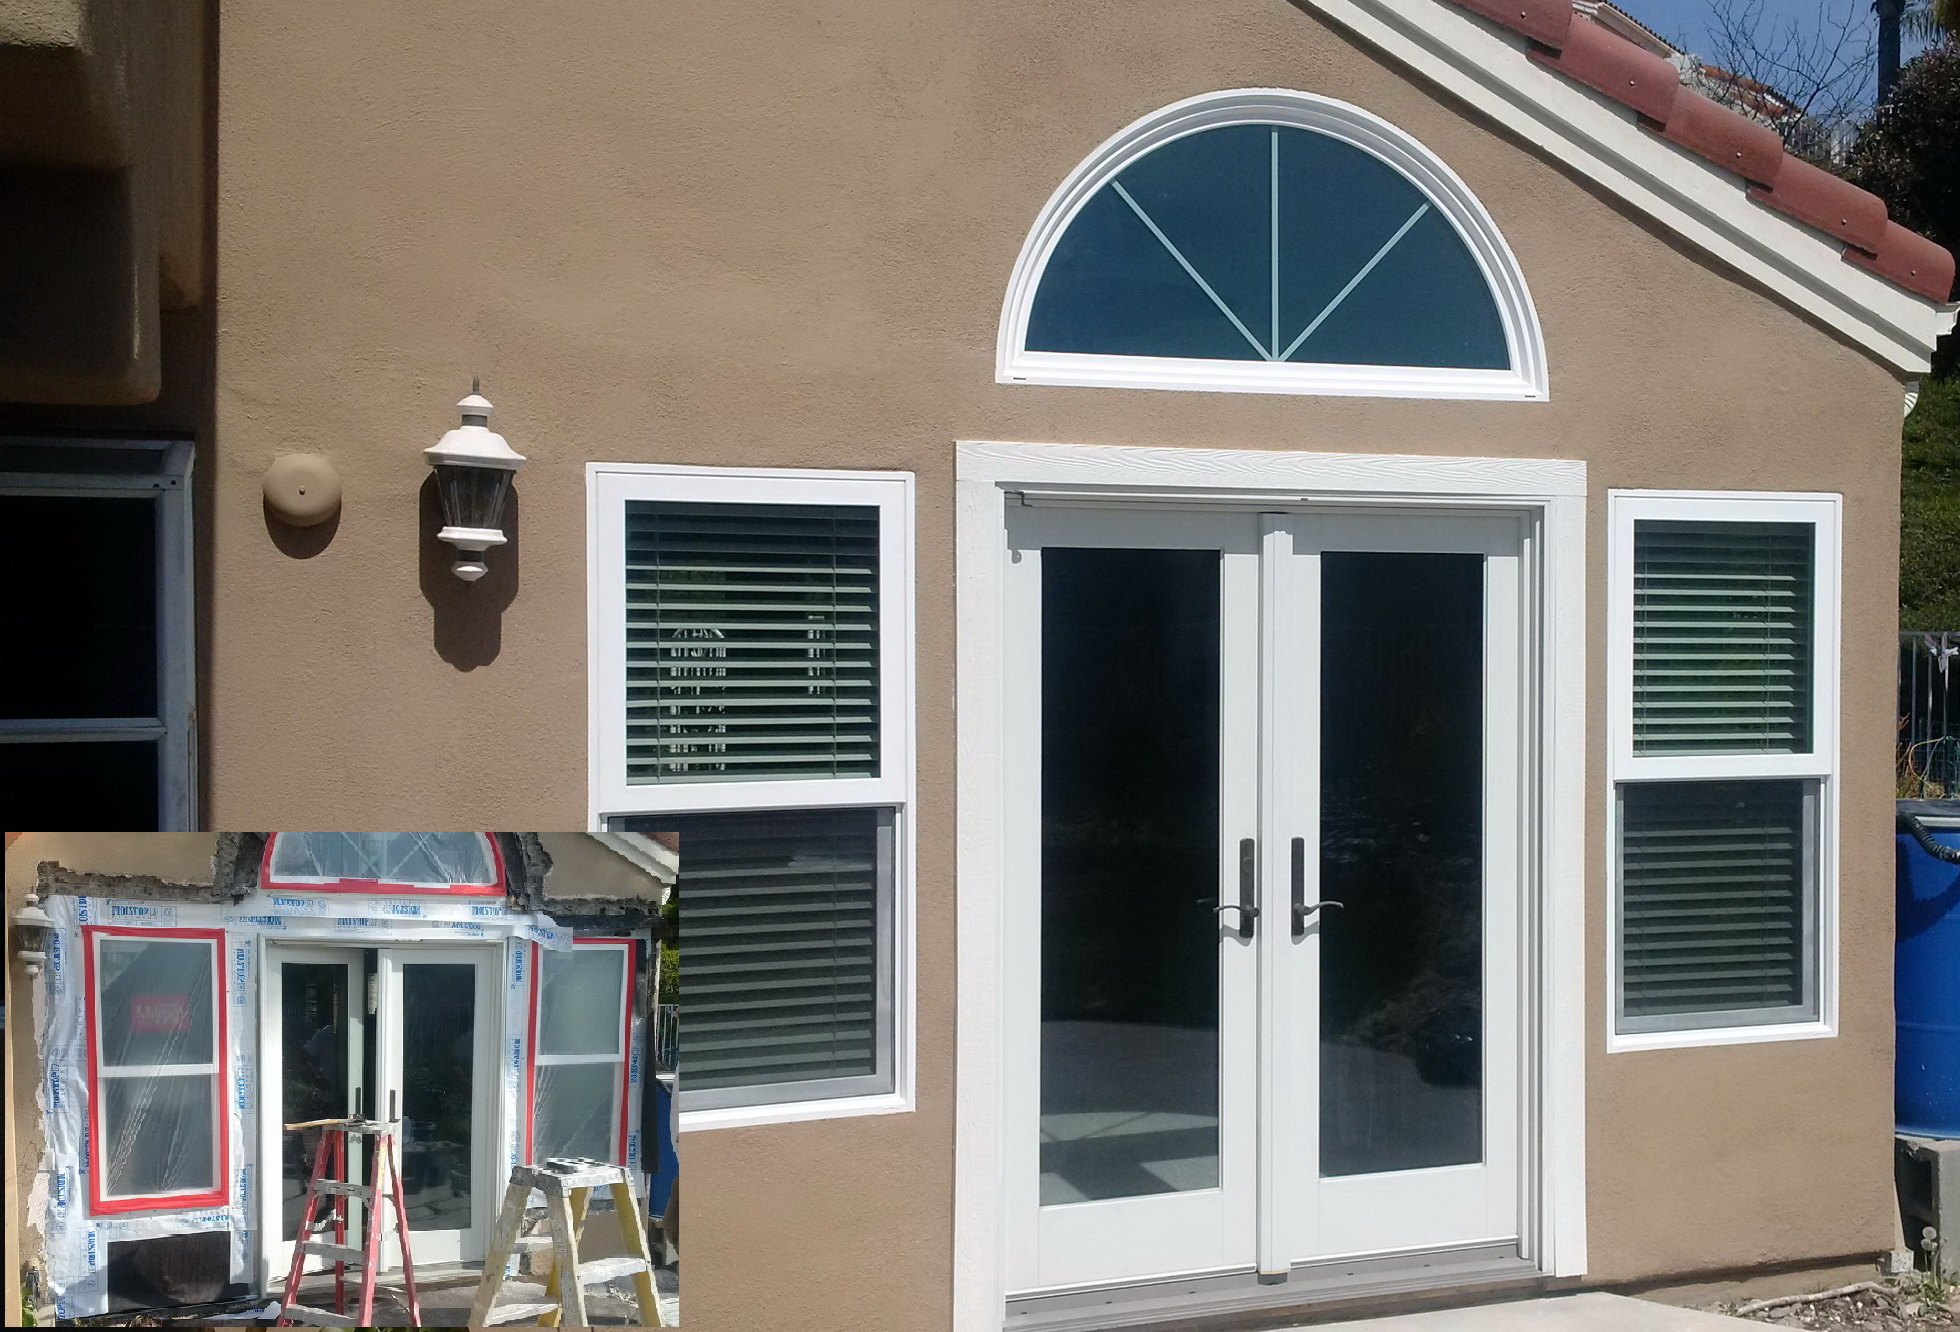 Window replacement and leak repairs